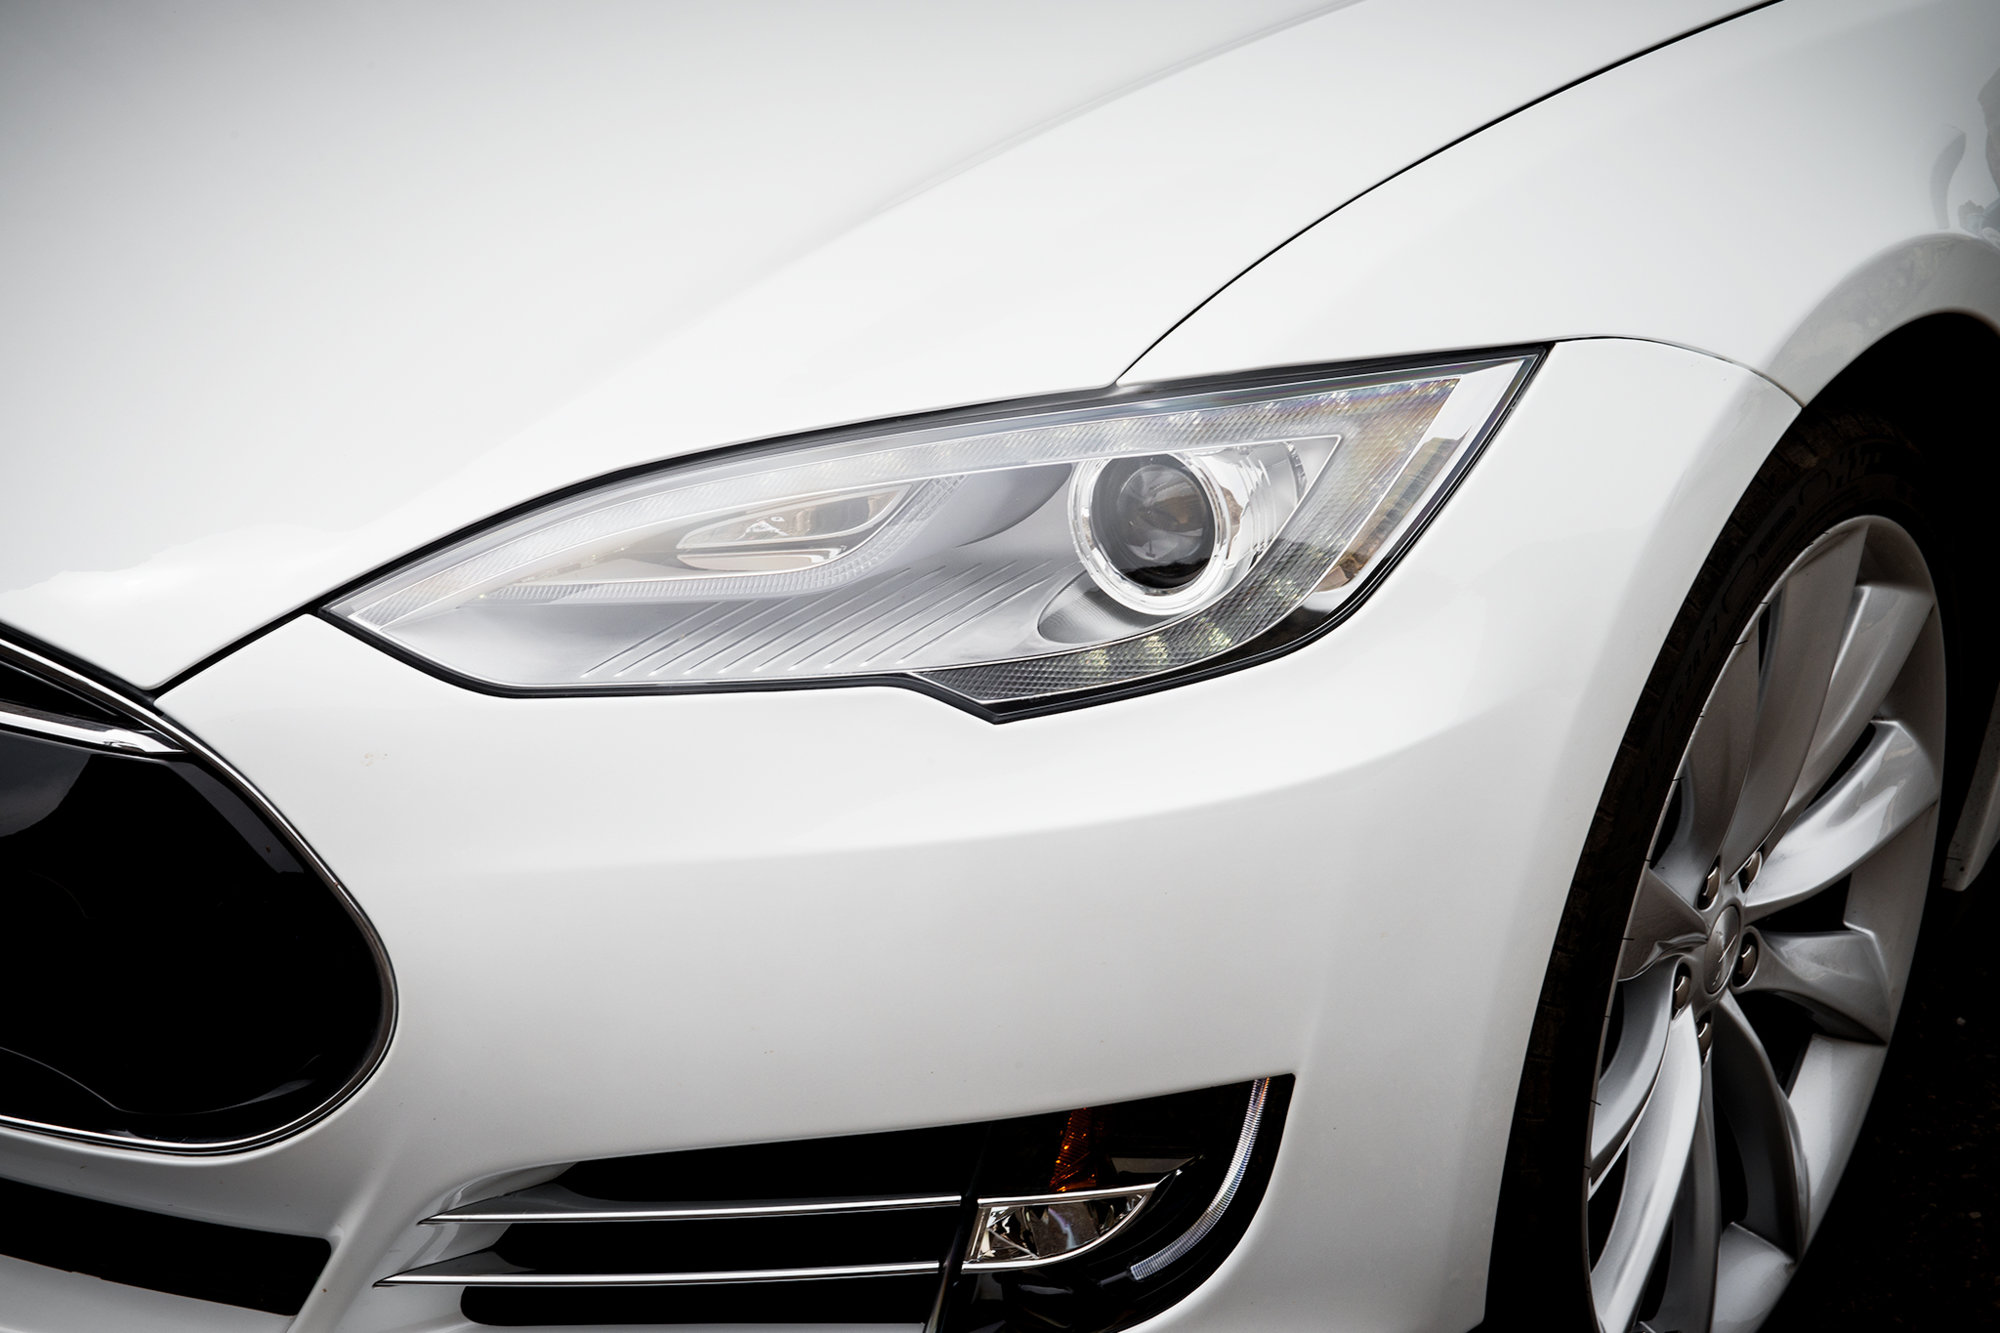 2013-Tesla-Model-S-headlight-view.jpg